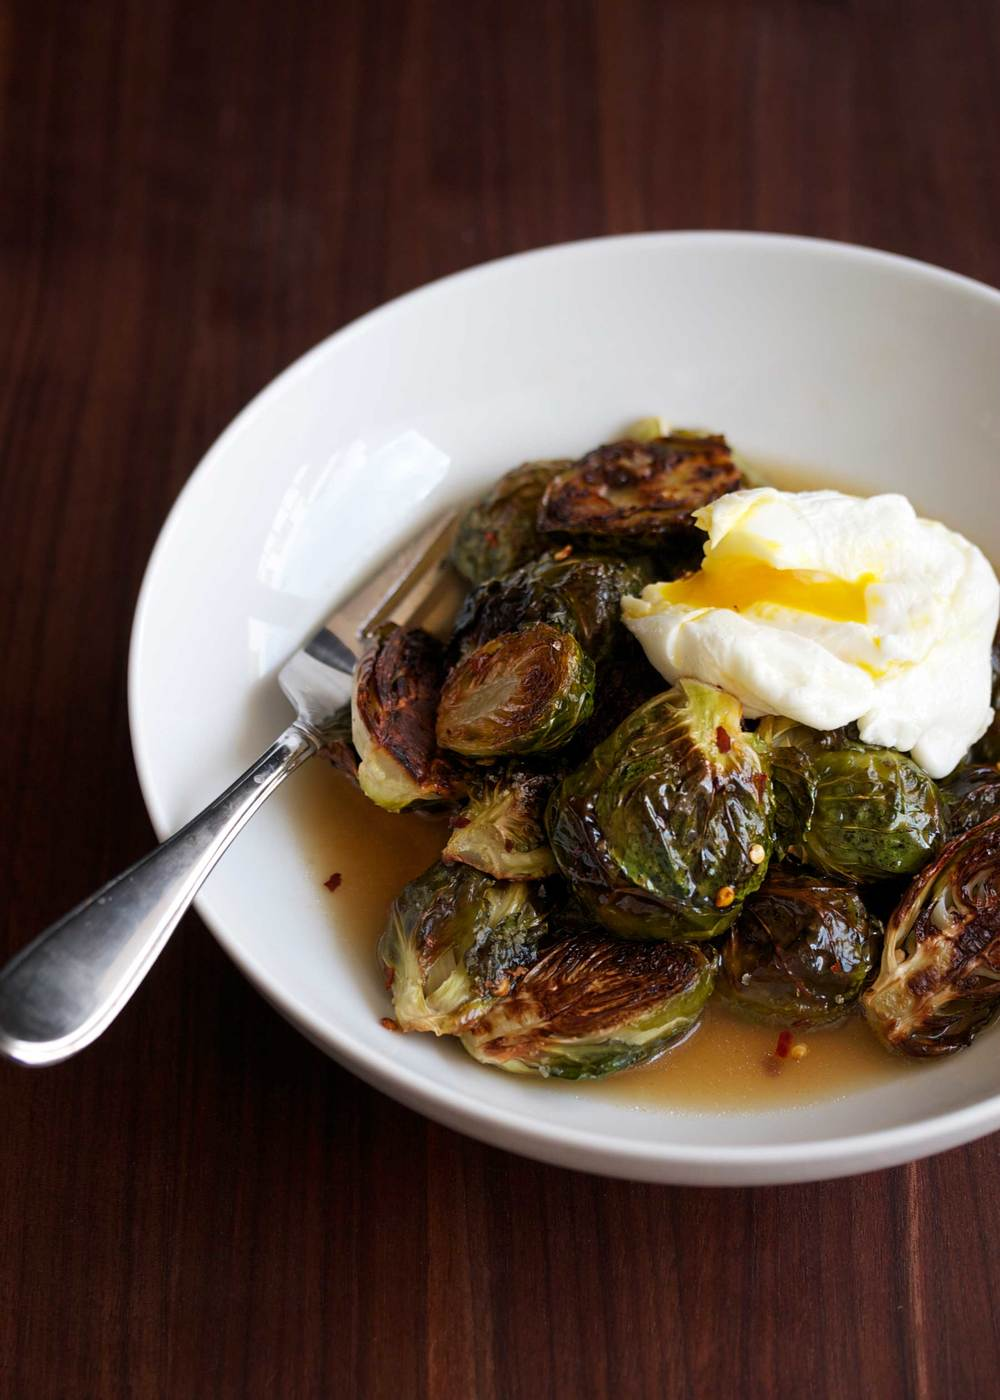 crispy brussels sprouts with bacon dashi broth and poached egg on top